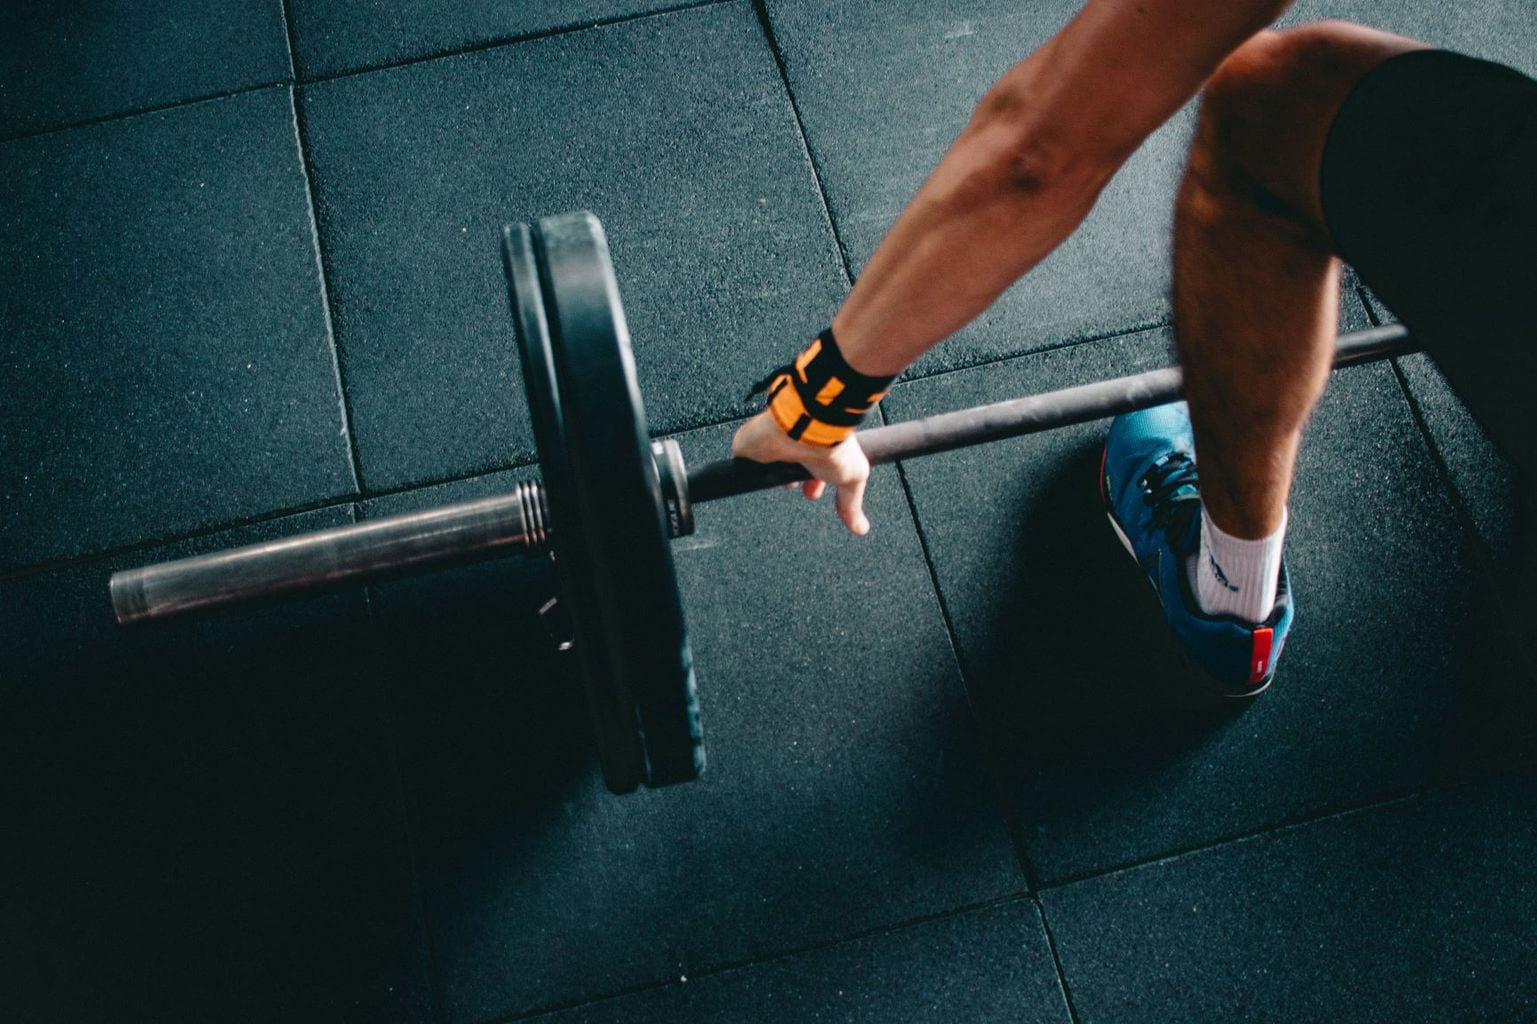 Fitness hashtags - weights